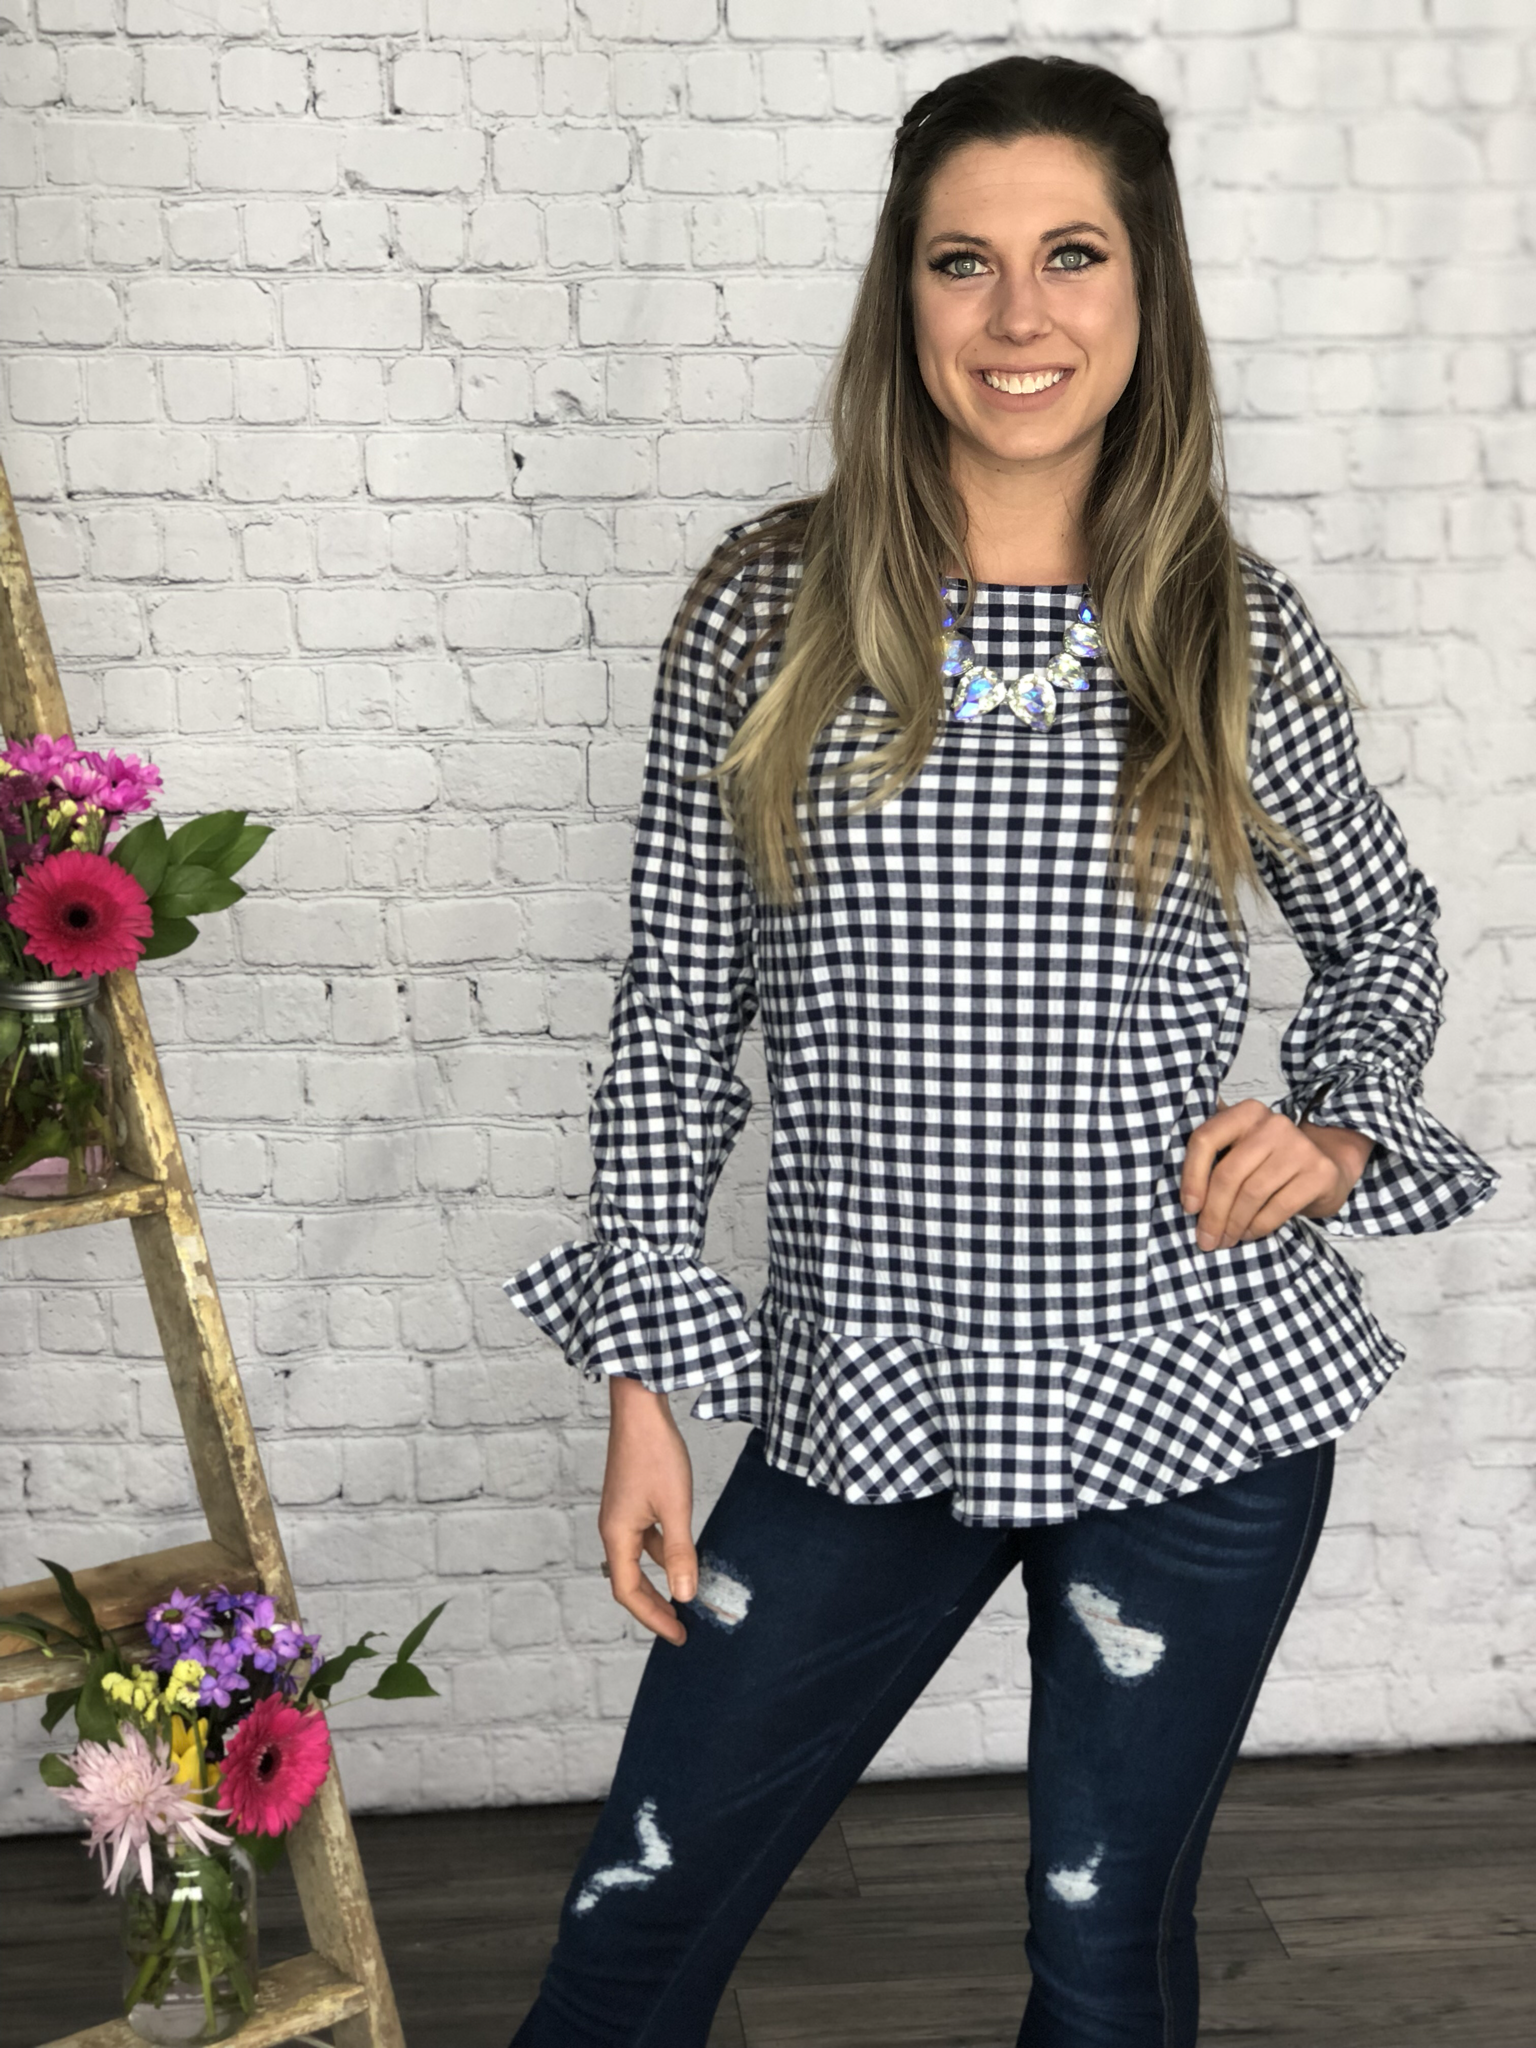 The Gingham Top